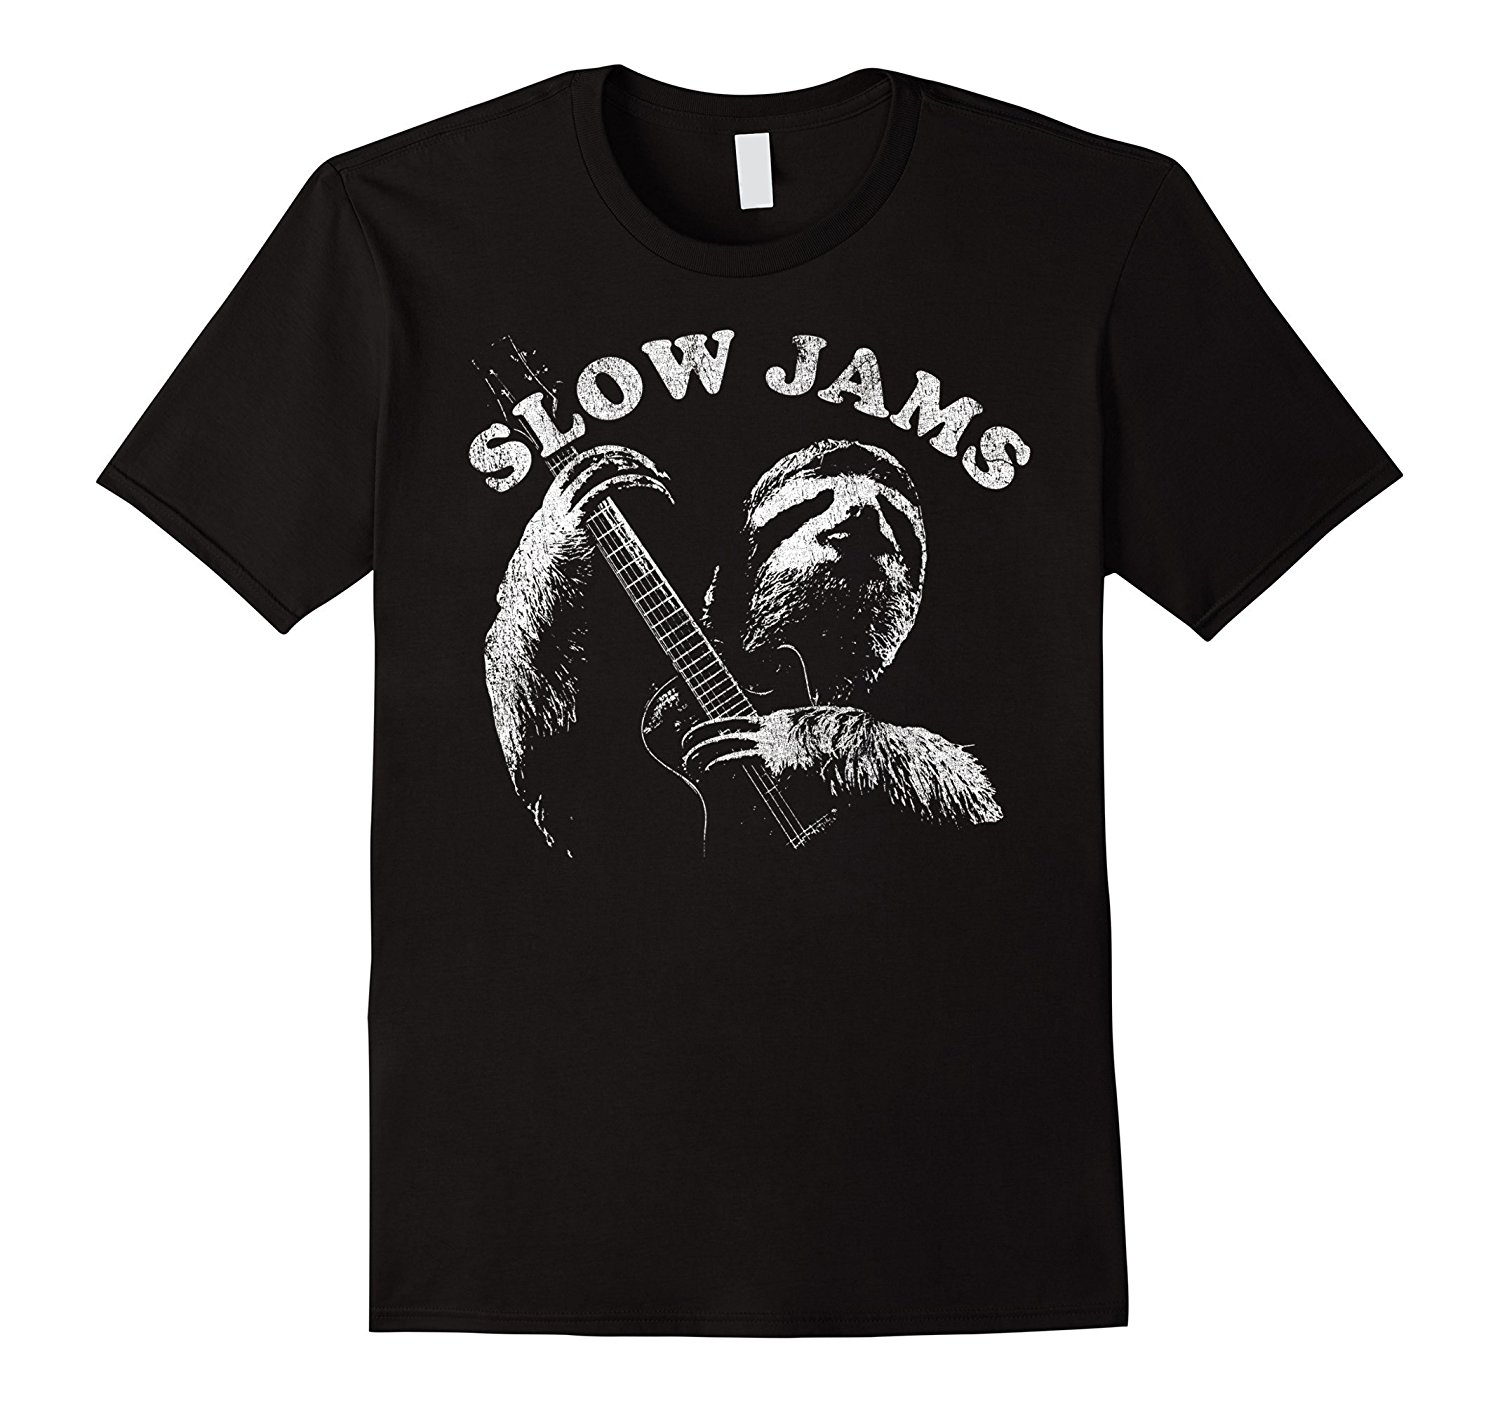 Collection Here Sloth Playing Guitar Slow Jams Vintage Graphic T-shirt Summer Style Mens T-shirt Shirt Cotton Hight Quality Man T Shirt Online Discount